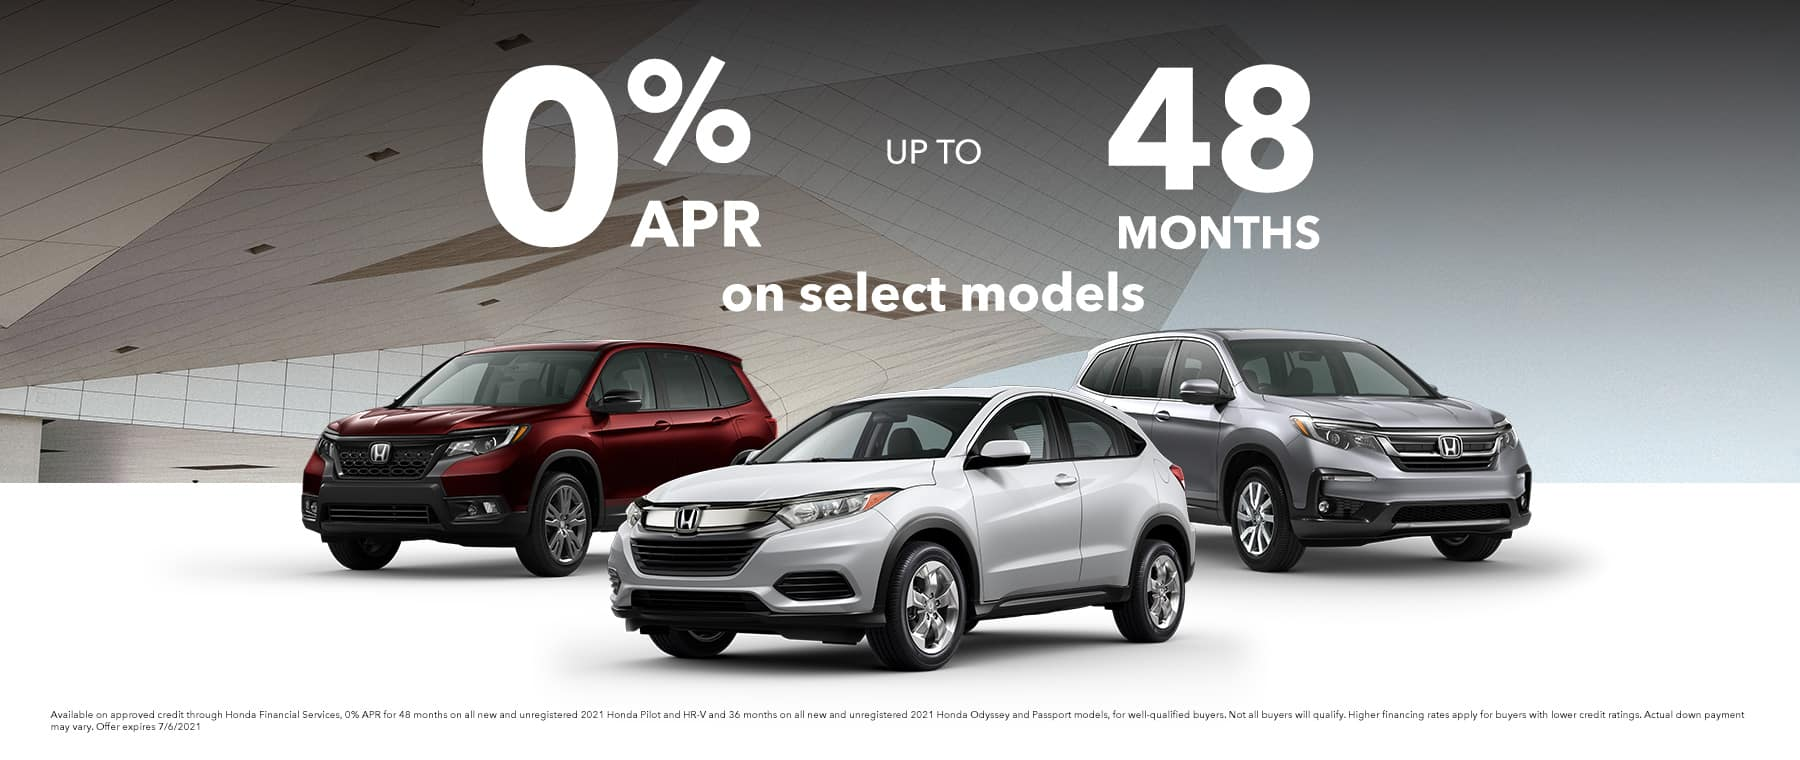 0% APR up to 48 months on select models